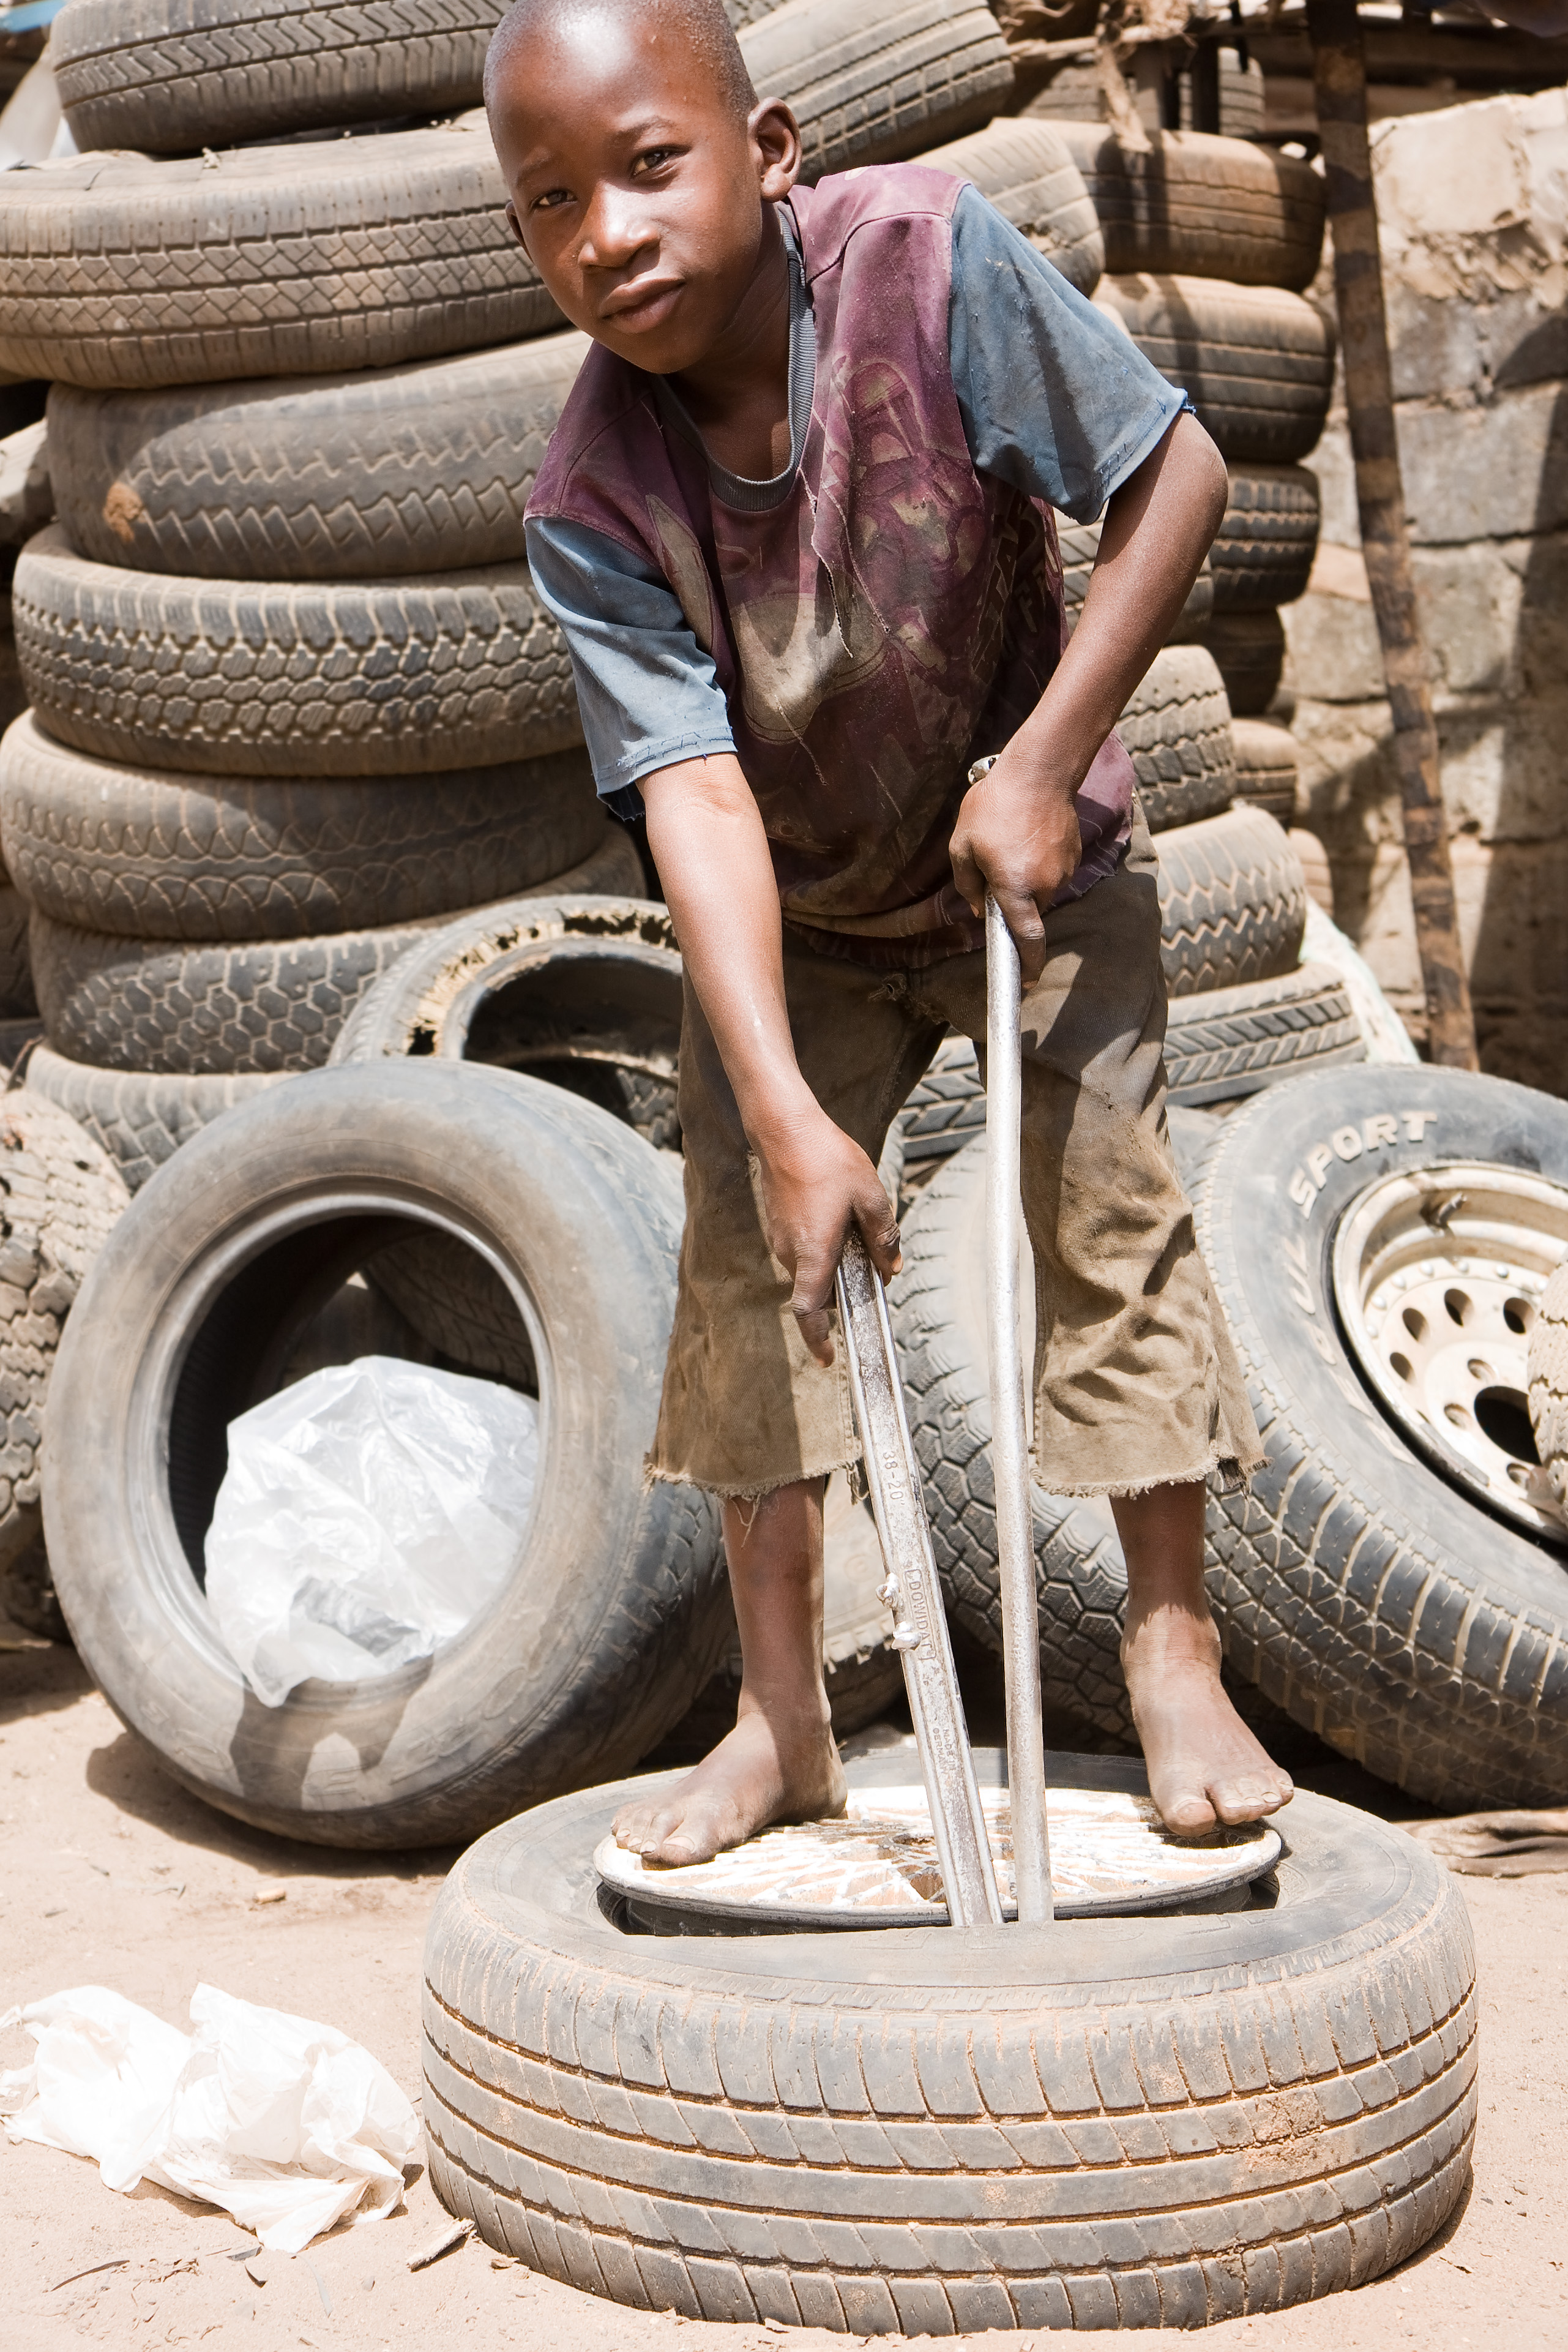 Tyre shop worker2